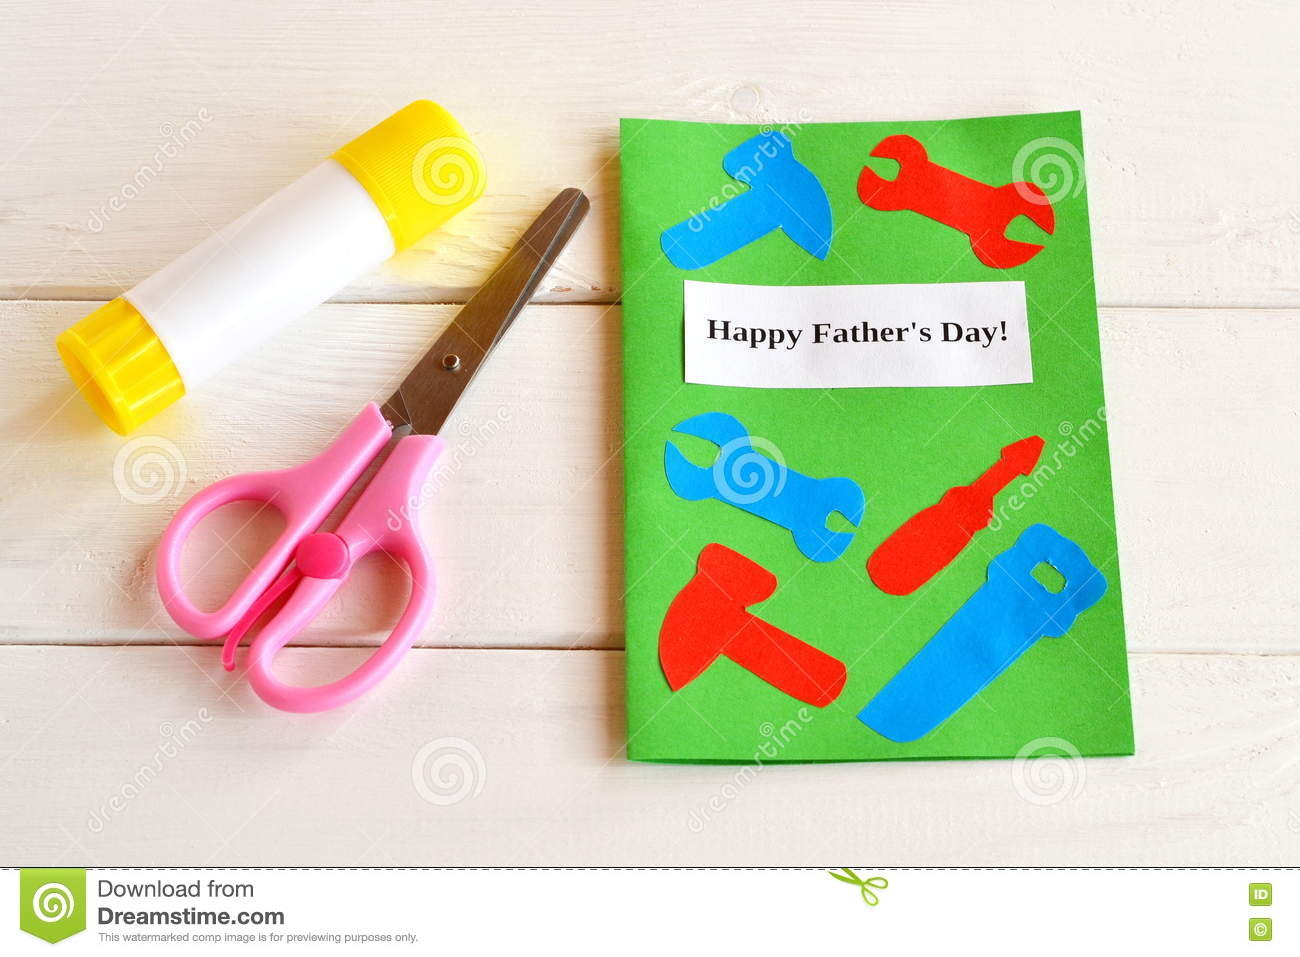 Happy fathers day greeting card with paper tools scissors glue happy father s day greeting card with paper tools scissors glue kids m4hsunfo